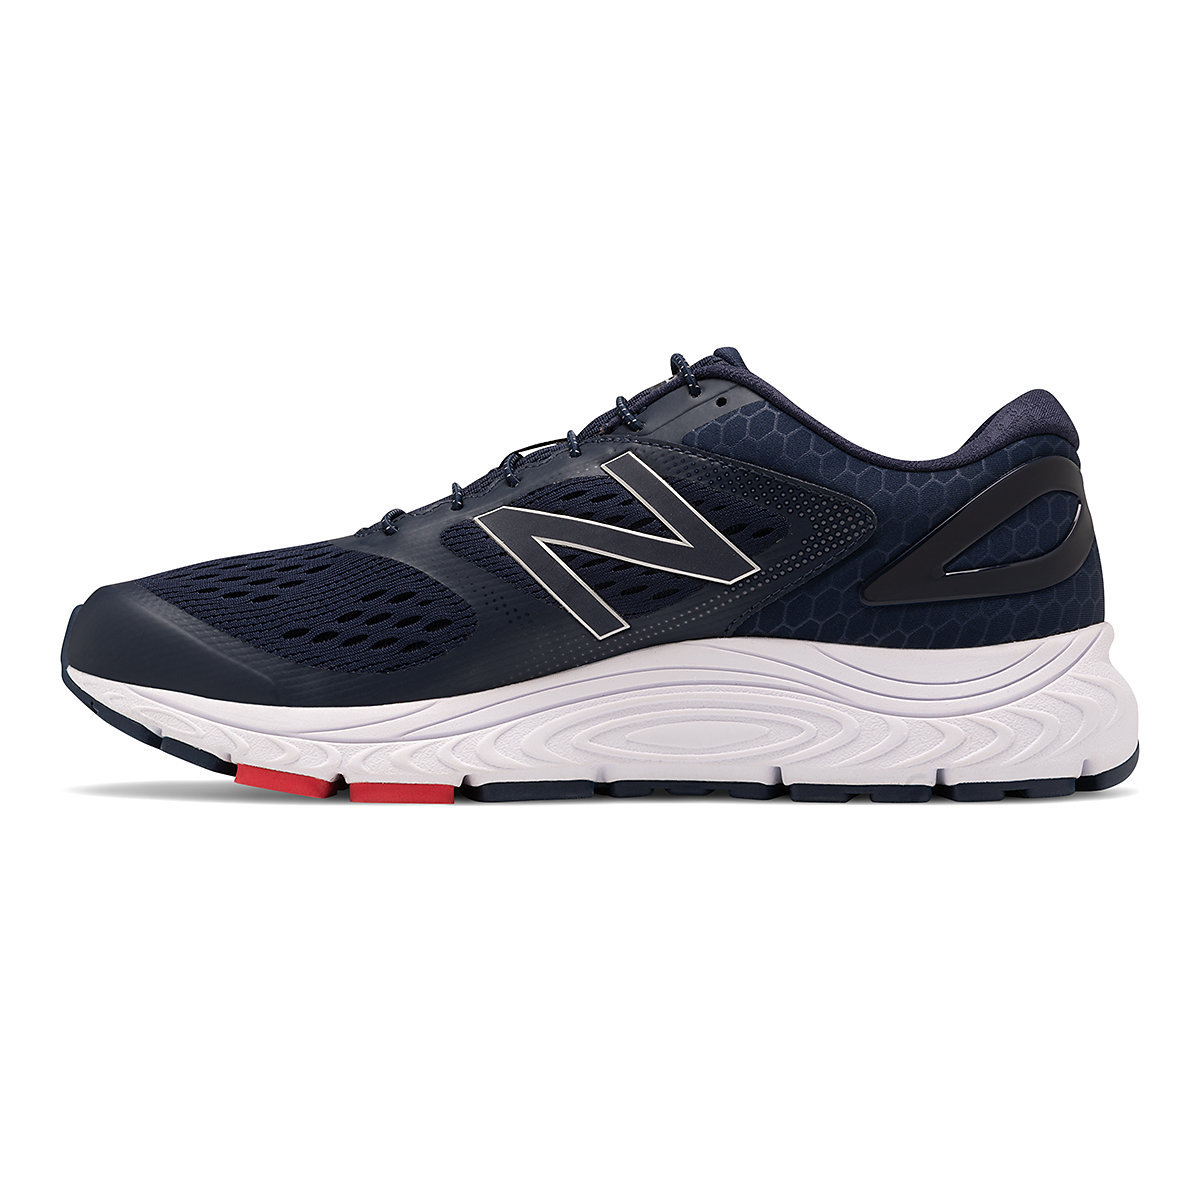 Men's New Balance 840v4 Running Shoe - Color: Pigment/White - Size: 7 - Width: Wide, Pigment/White, large, image 2